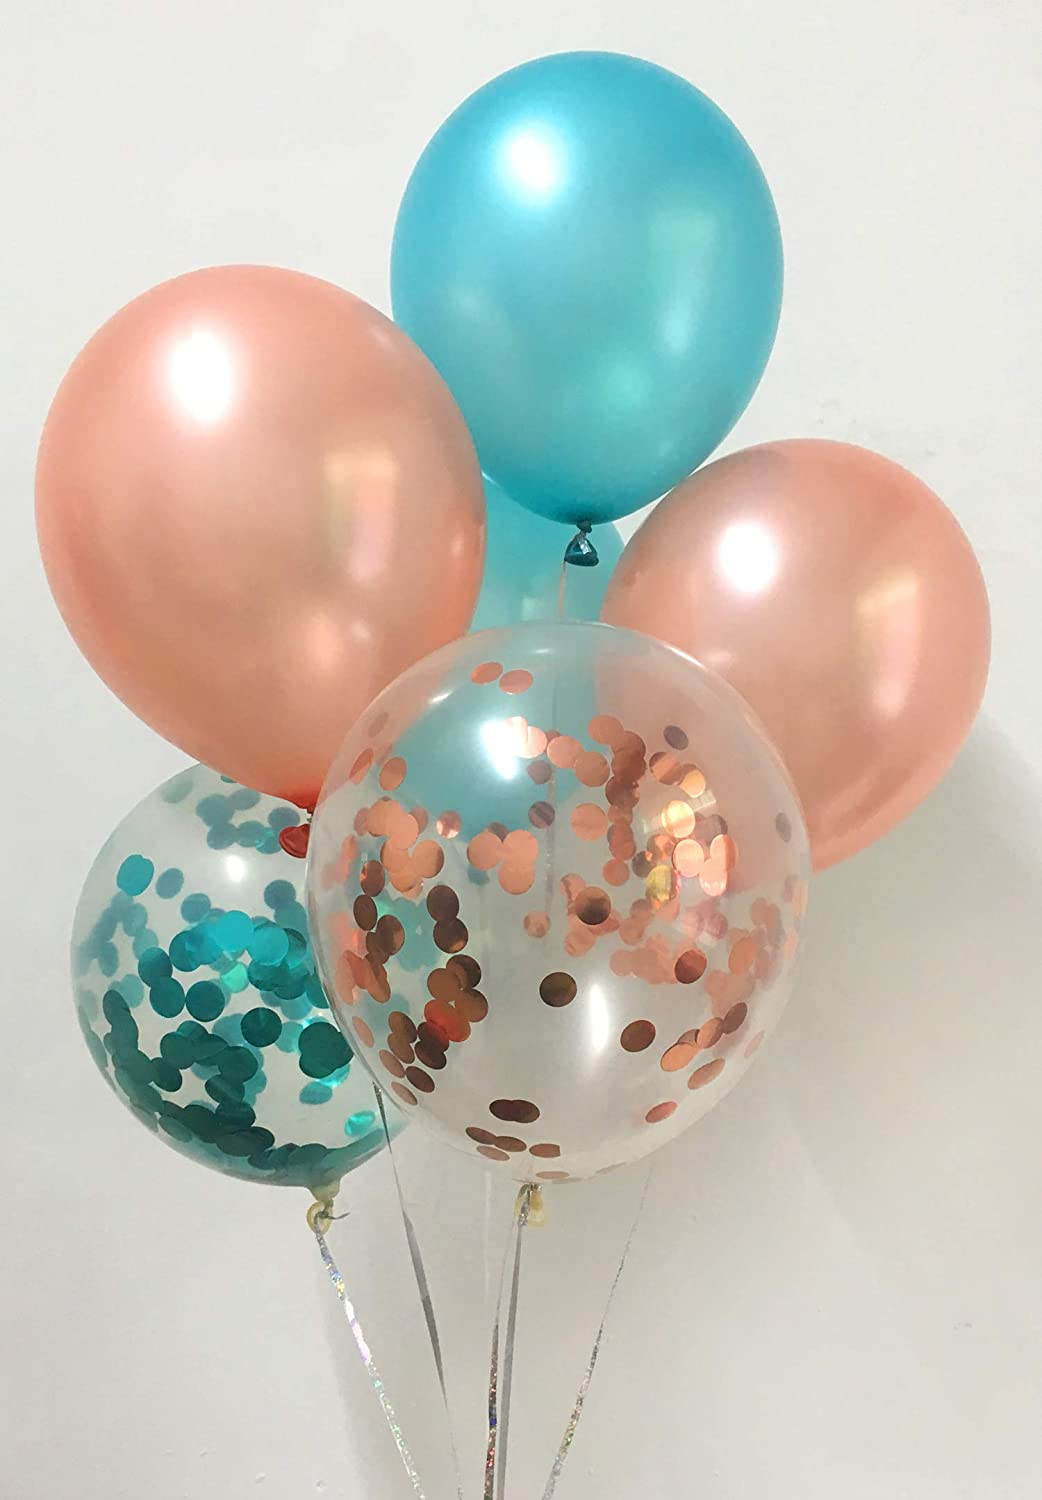 Metallic Teal Rose Gold Balloons for Party Decorations Bridal Shower Engagement Birthday